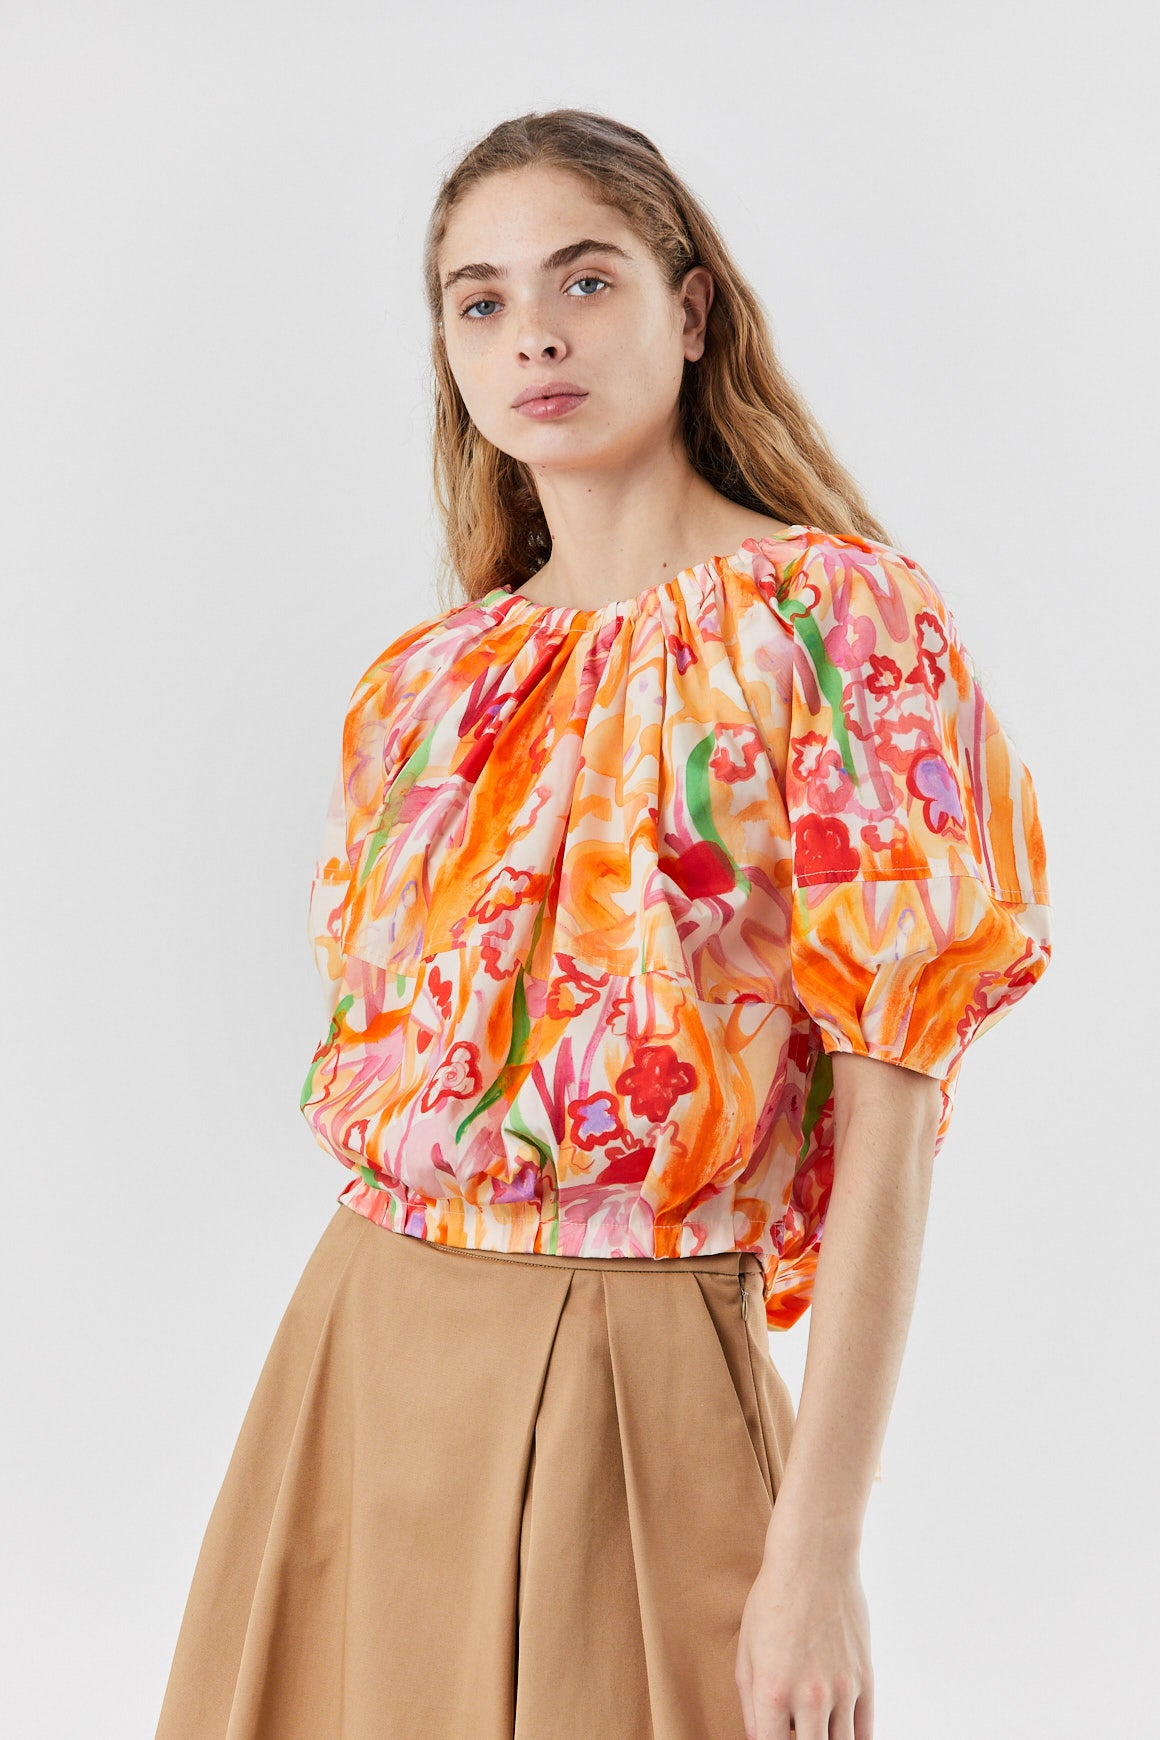 MARNI - puff top, Nectar